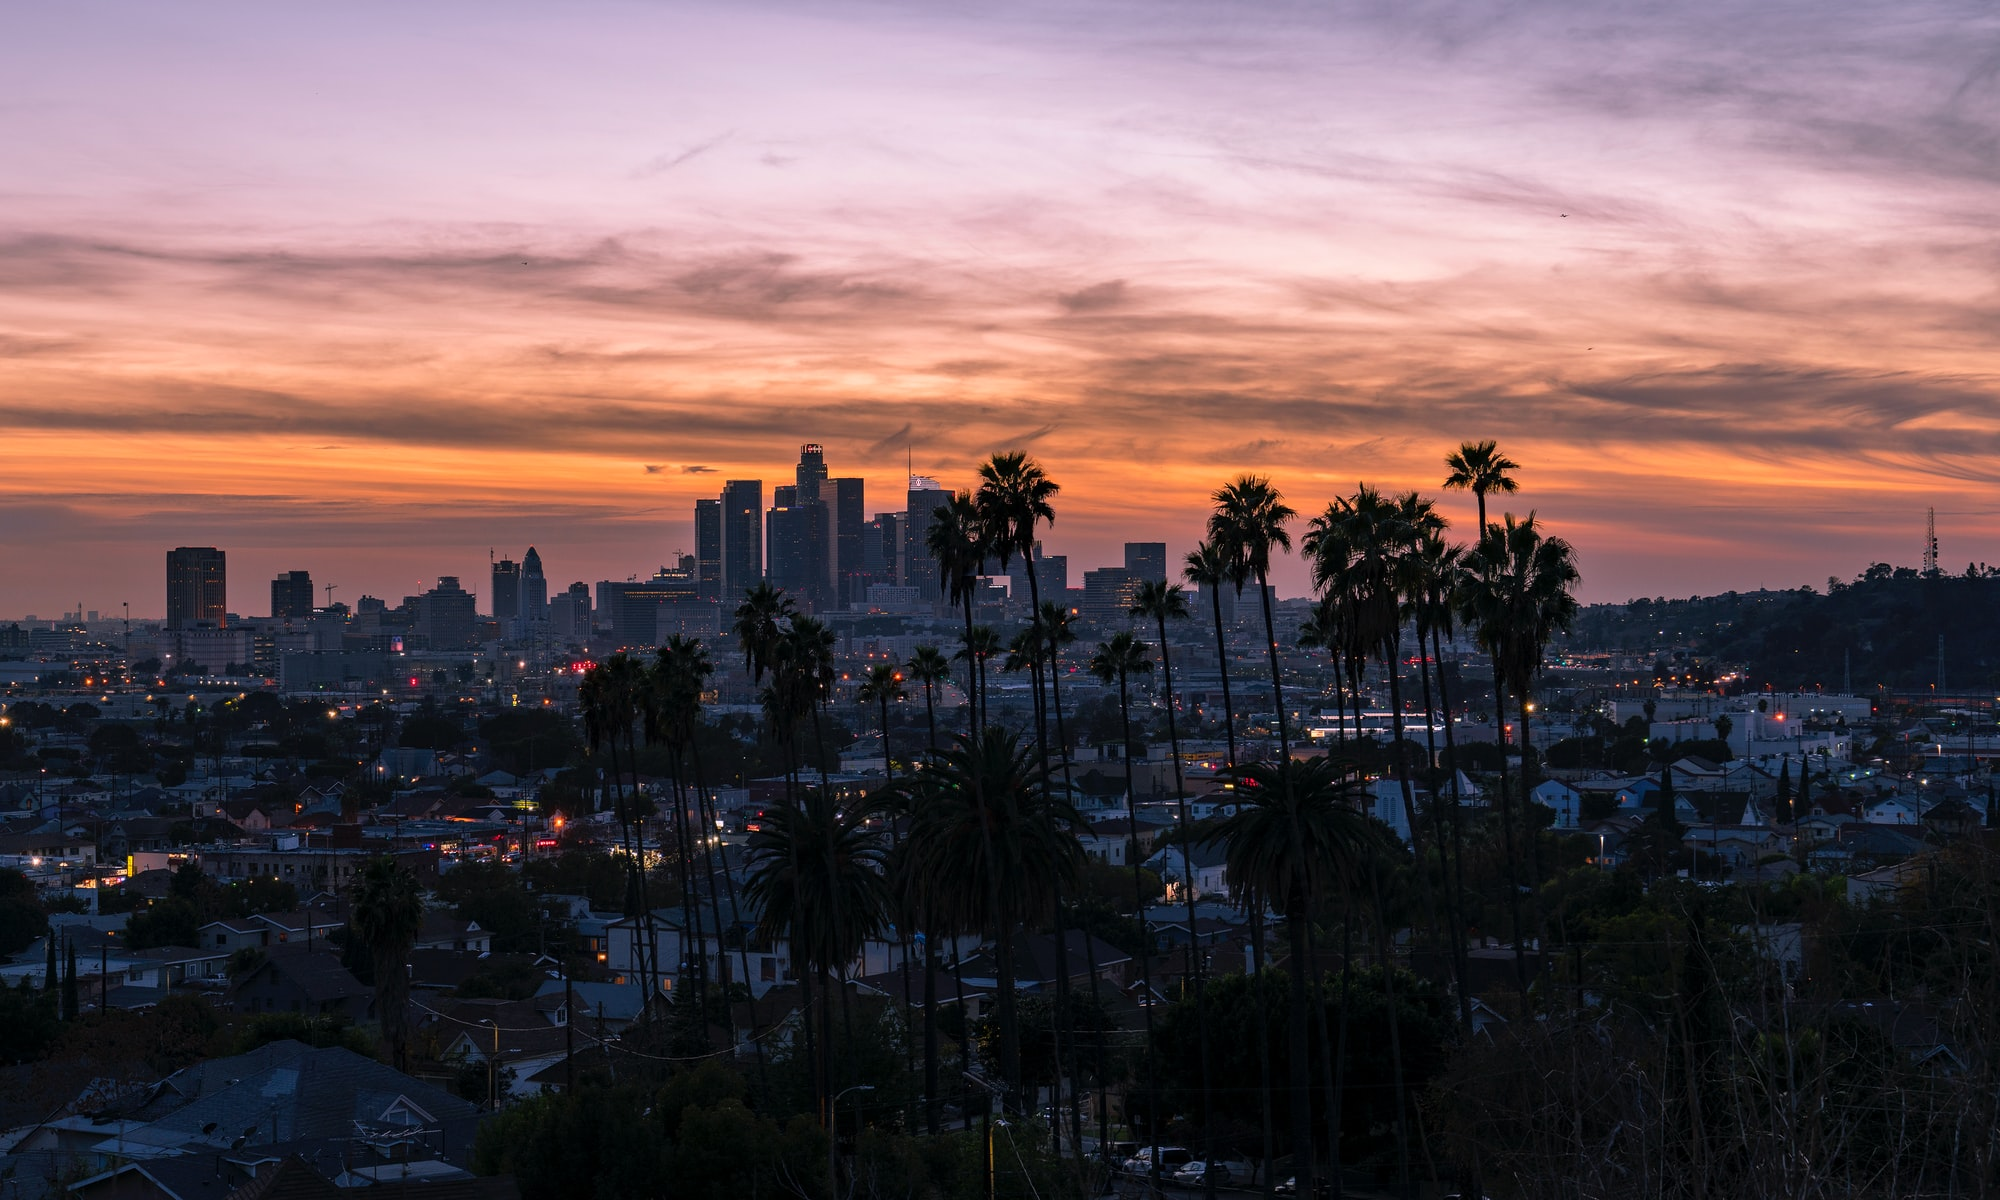 Flight Deal: $100 Multiple Cities to California Roundtrip